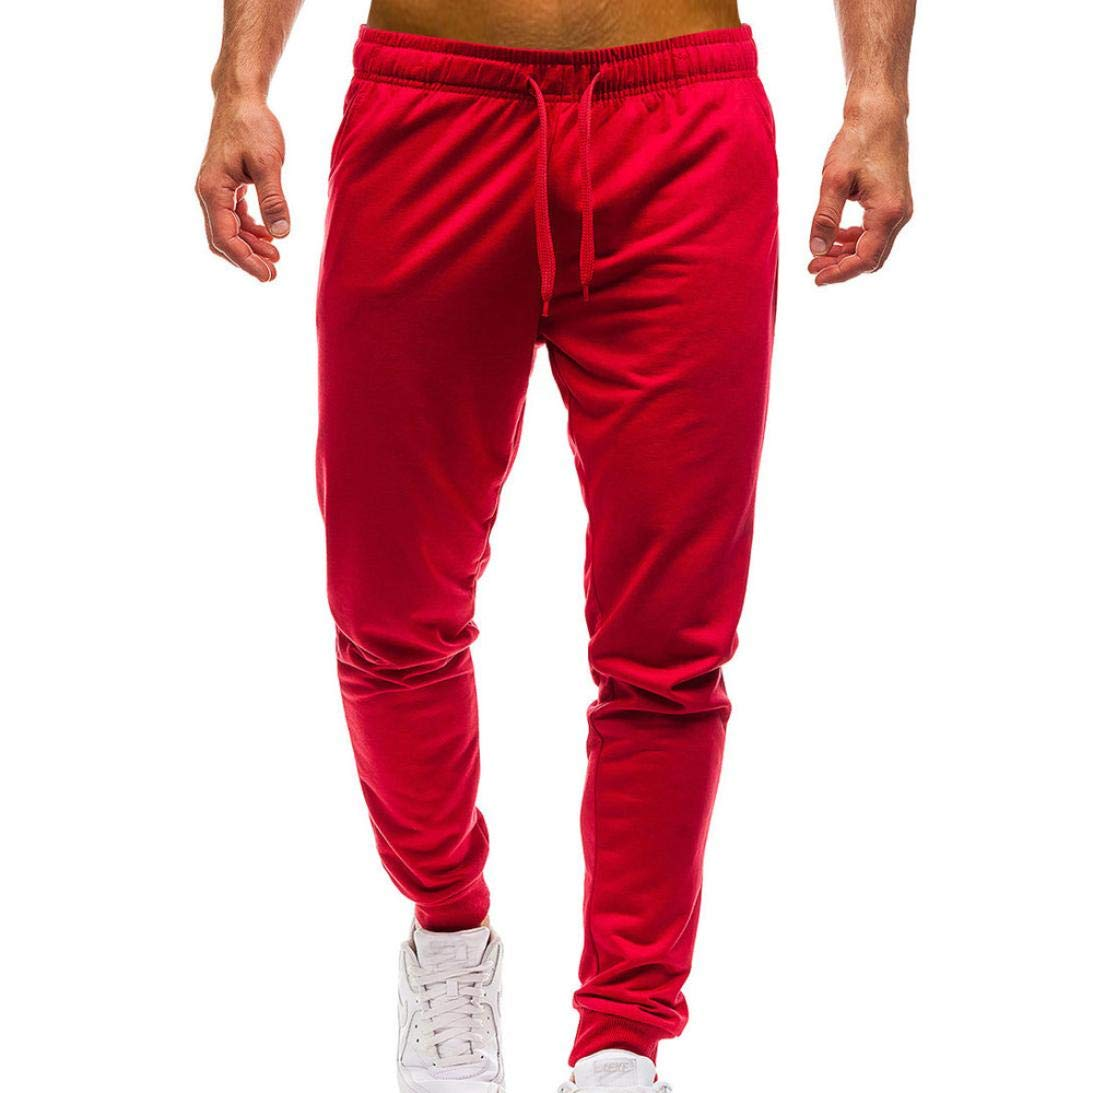 Men Pure Color Pocket Overalls Casual Pocket Sport Work Casual Trouser,PASATO Classic Cotton Pants(Red, L)